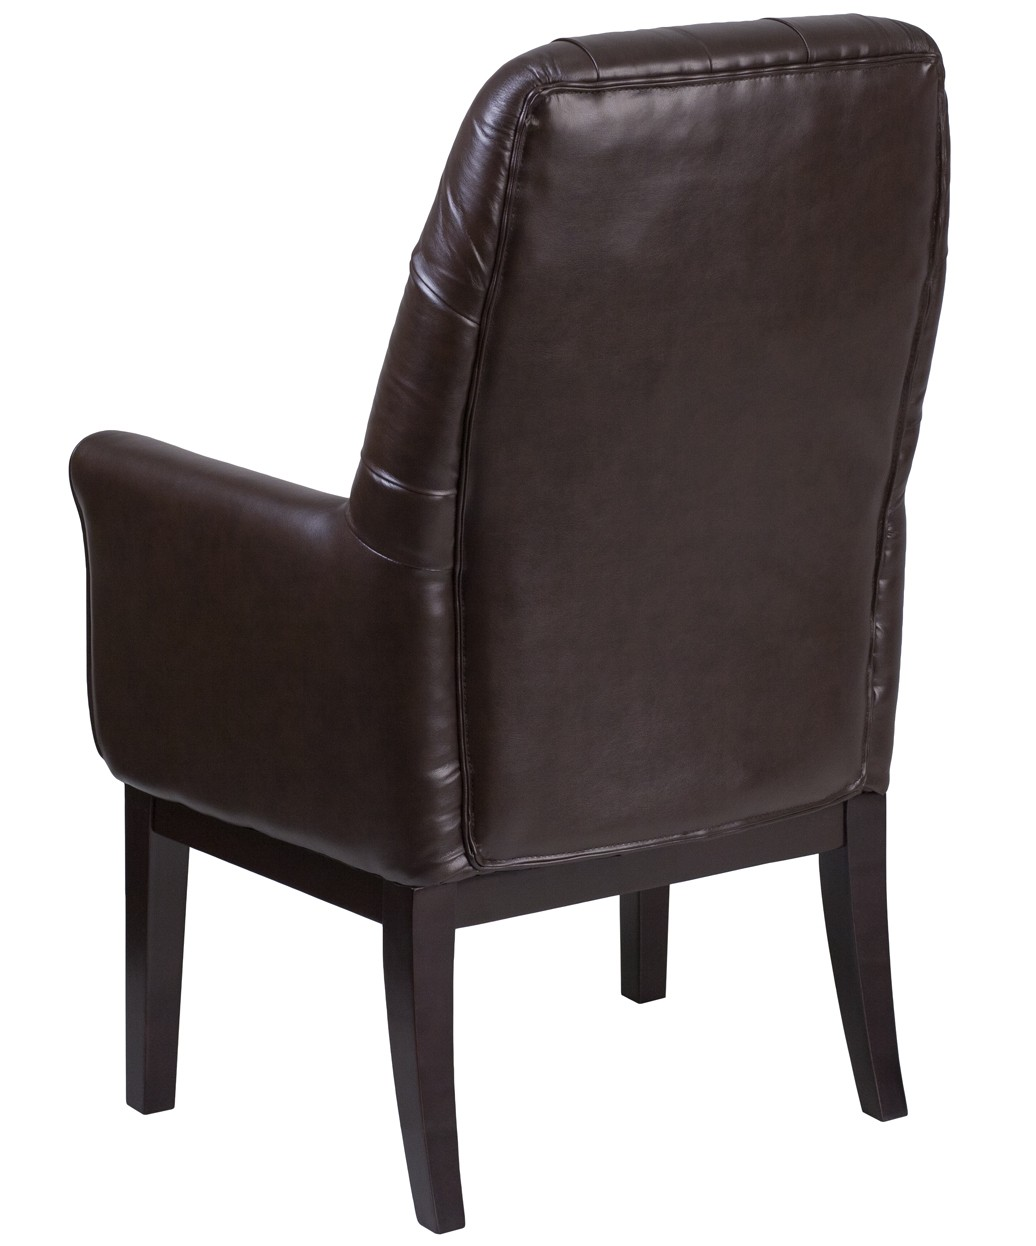 Wilson Tufted Leather Reception Chair